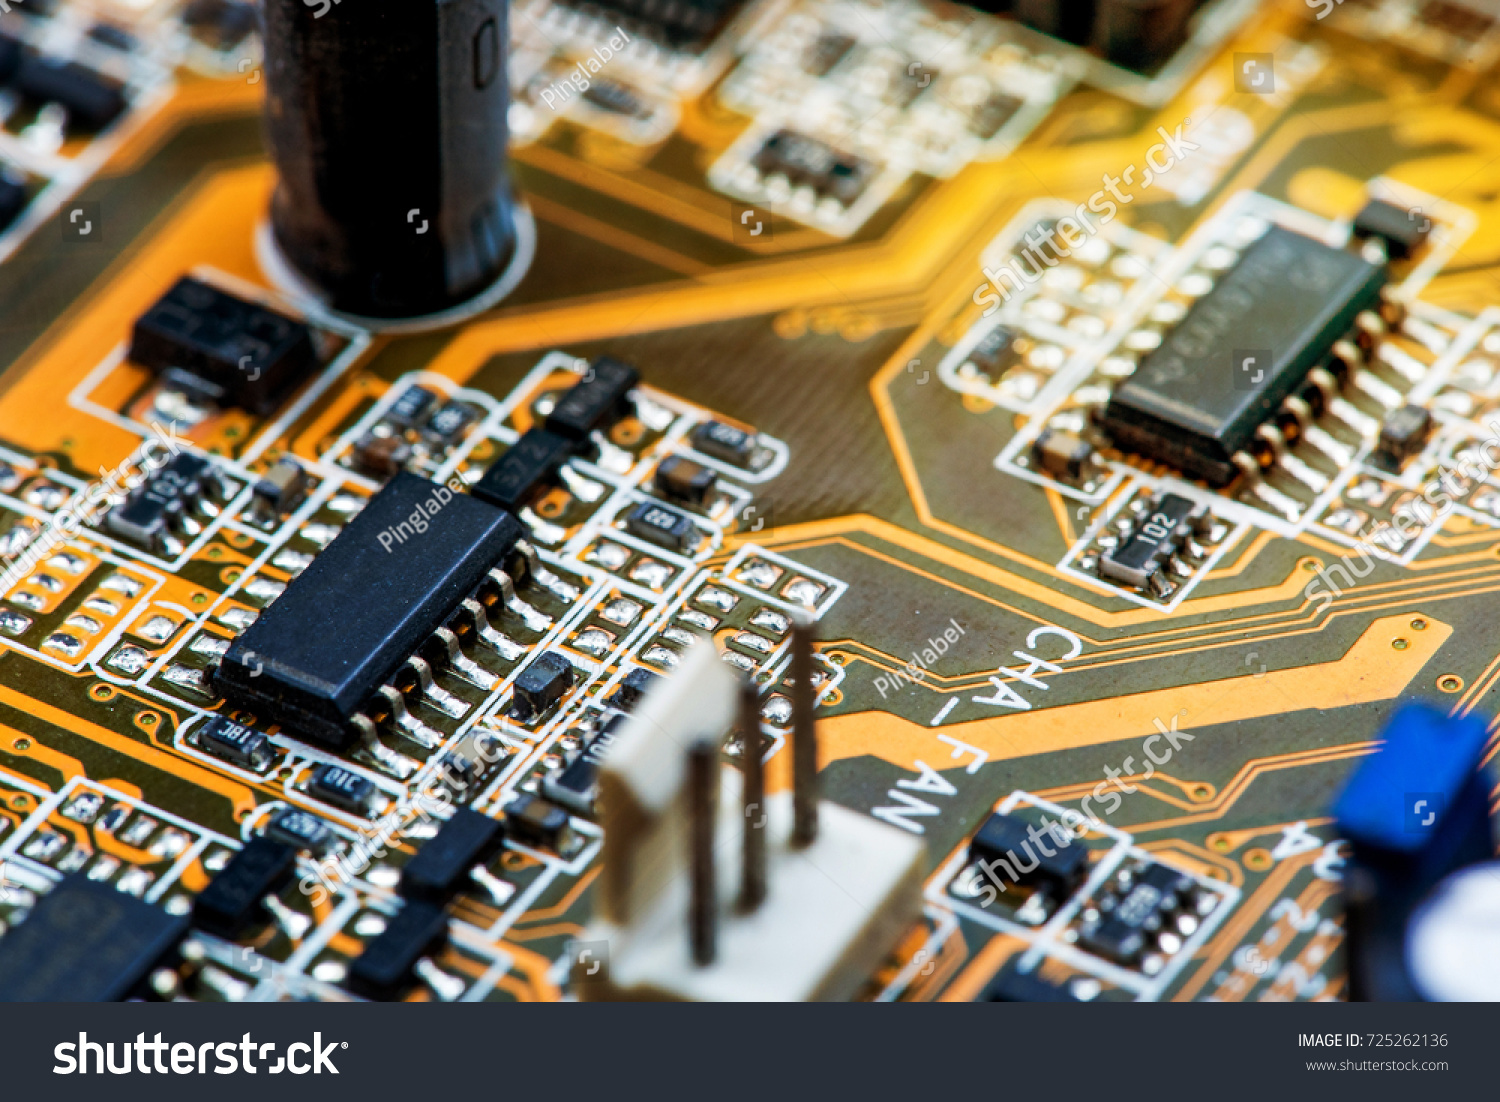 Abstractclose Circuits Electronic On Mainboard Computer Stock Photo Repairing Circuit Board Royalty Free Image Up Of Technology Background Logic